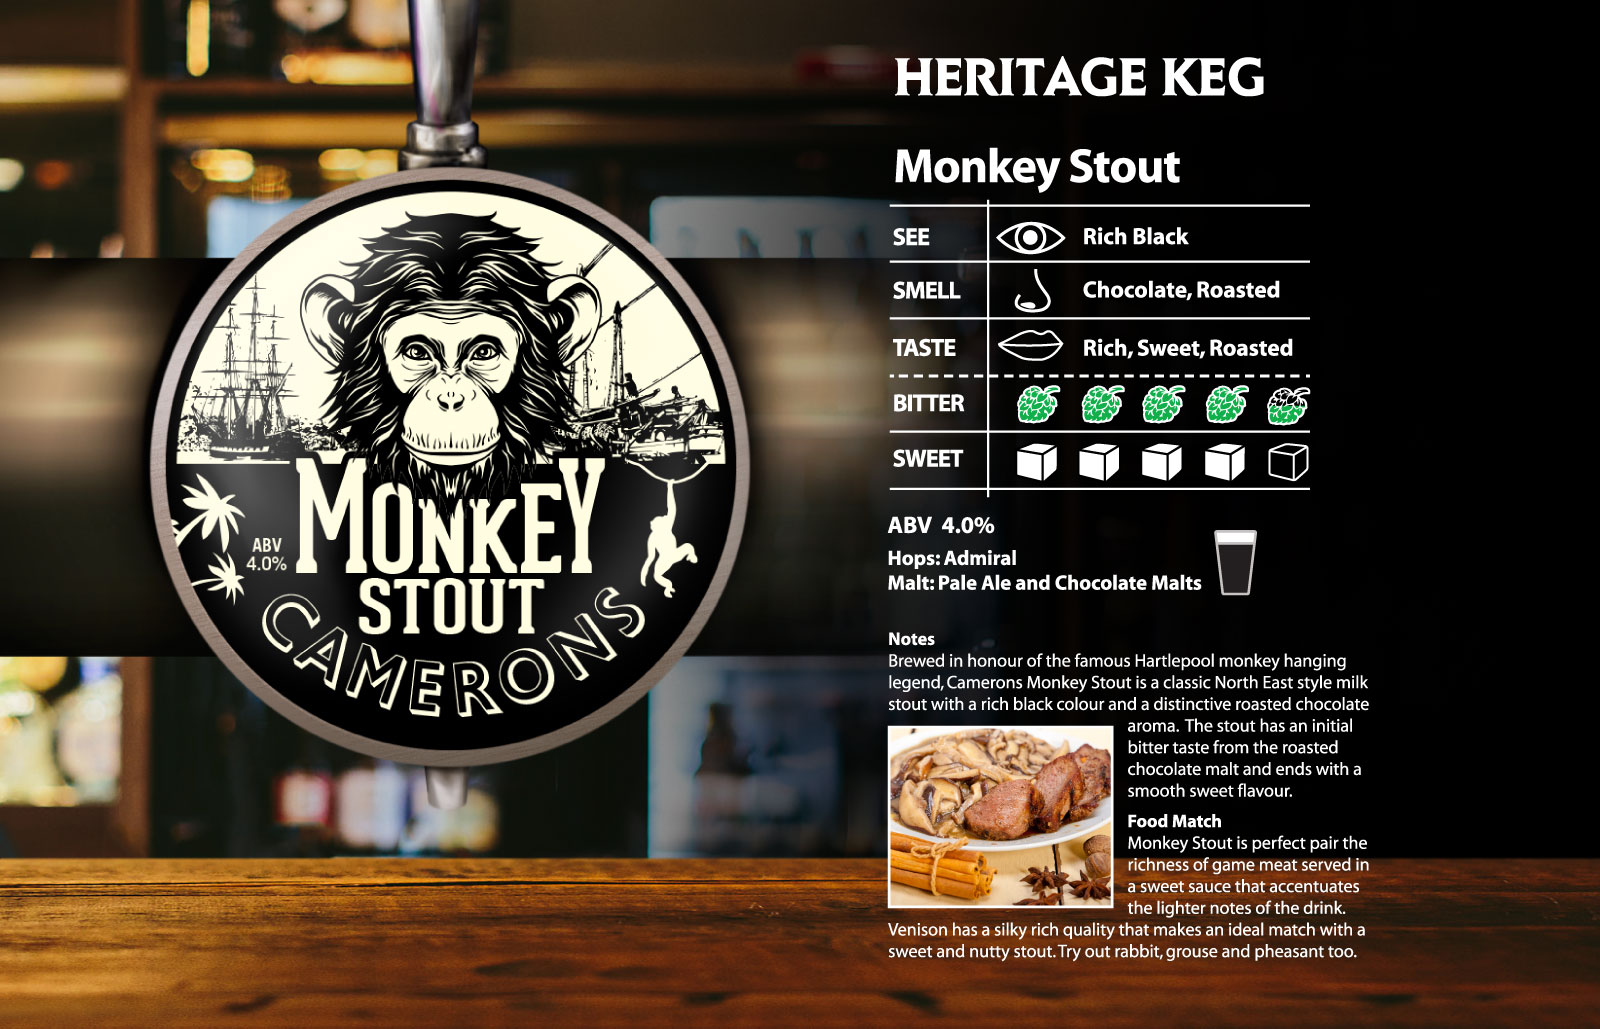 monkey Stout Heritage Keg